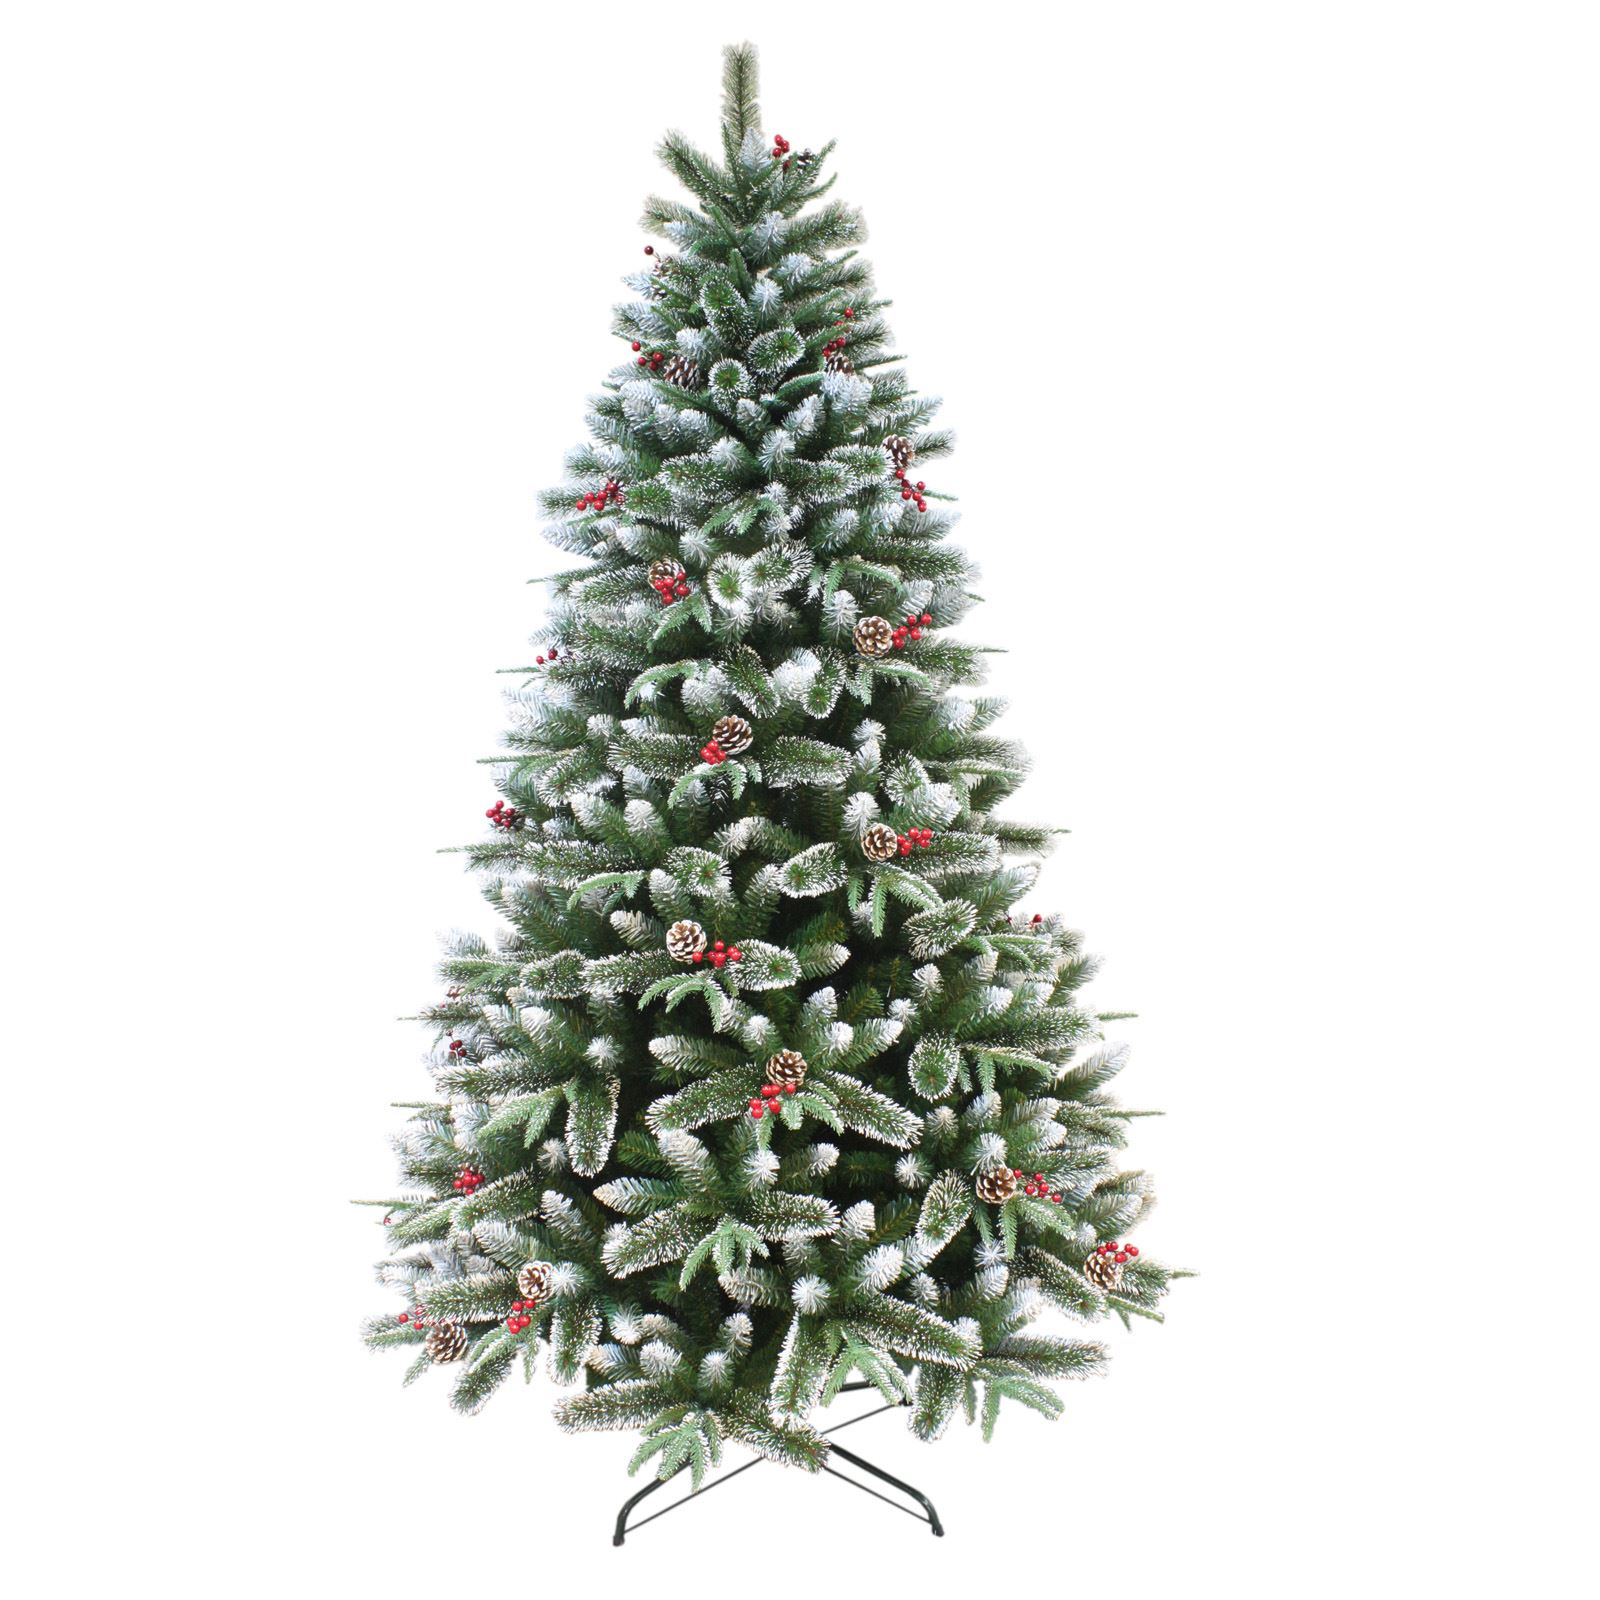 Luxurious Christmas Trees: Gorgeous Luxury Snow Frosted Mixed Pine Artificial